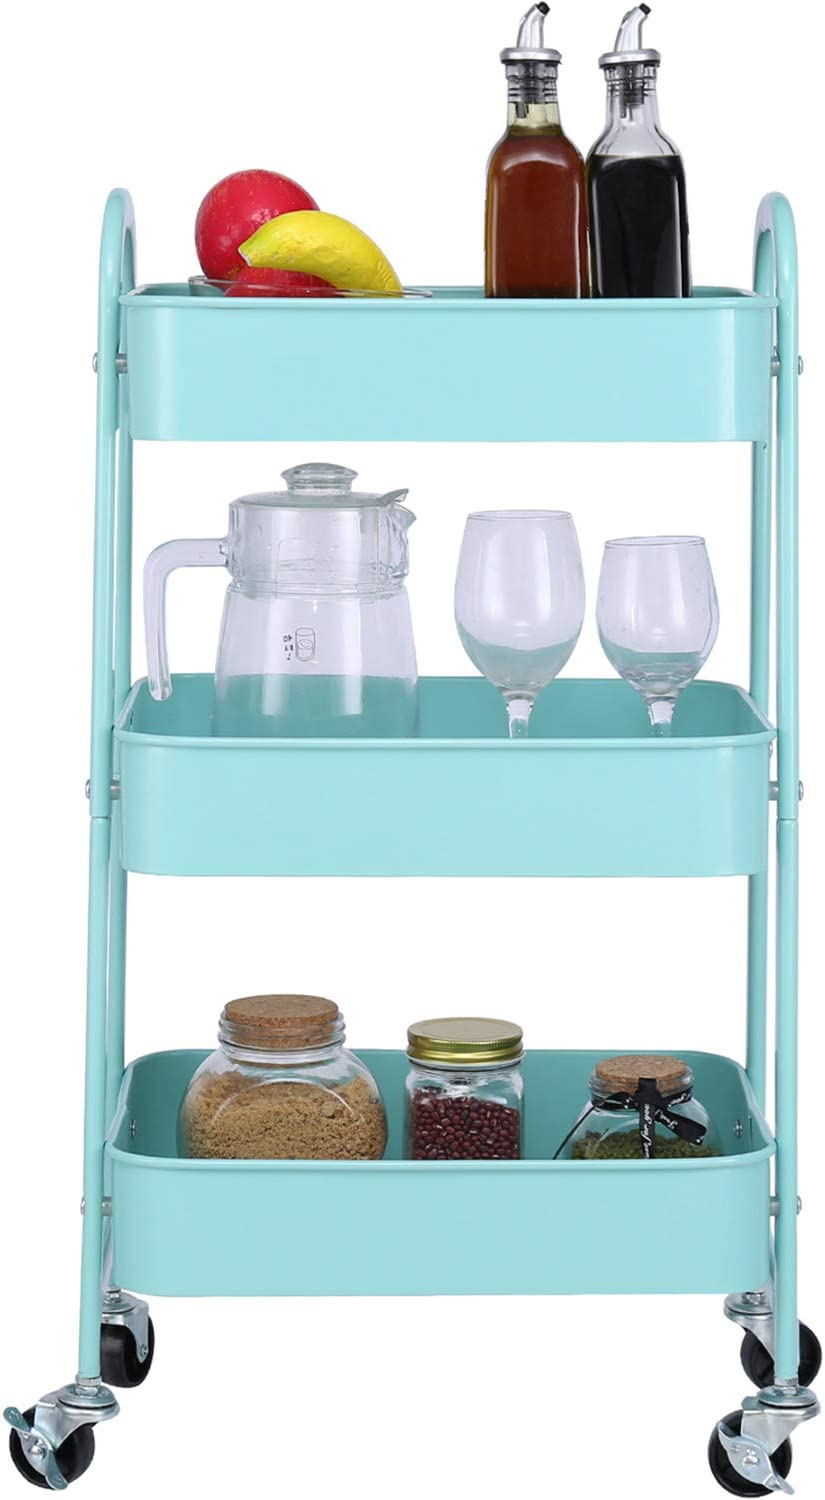 3-Tier Metal Mesh Utility Rolling Cart Storage Organizer with Wheels, Turquoise